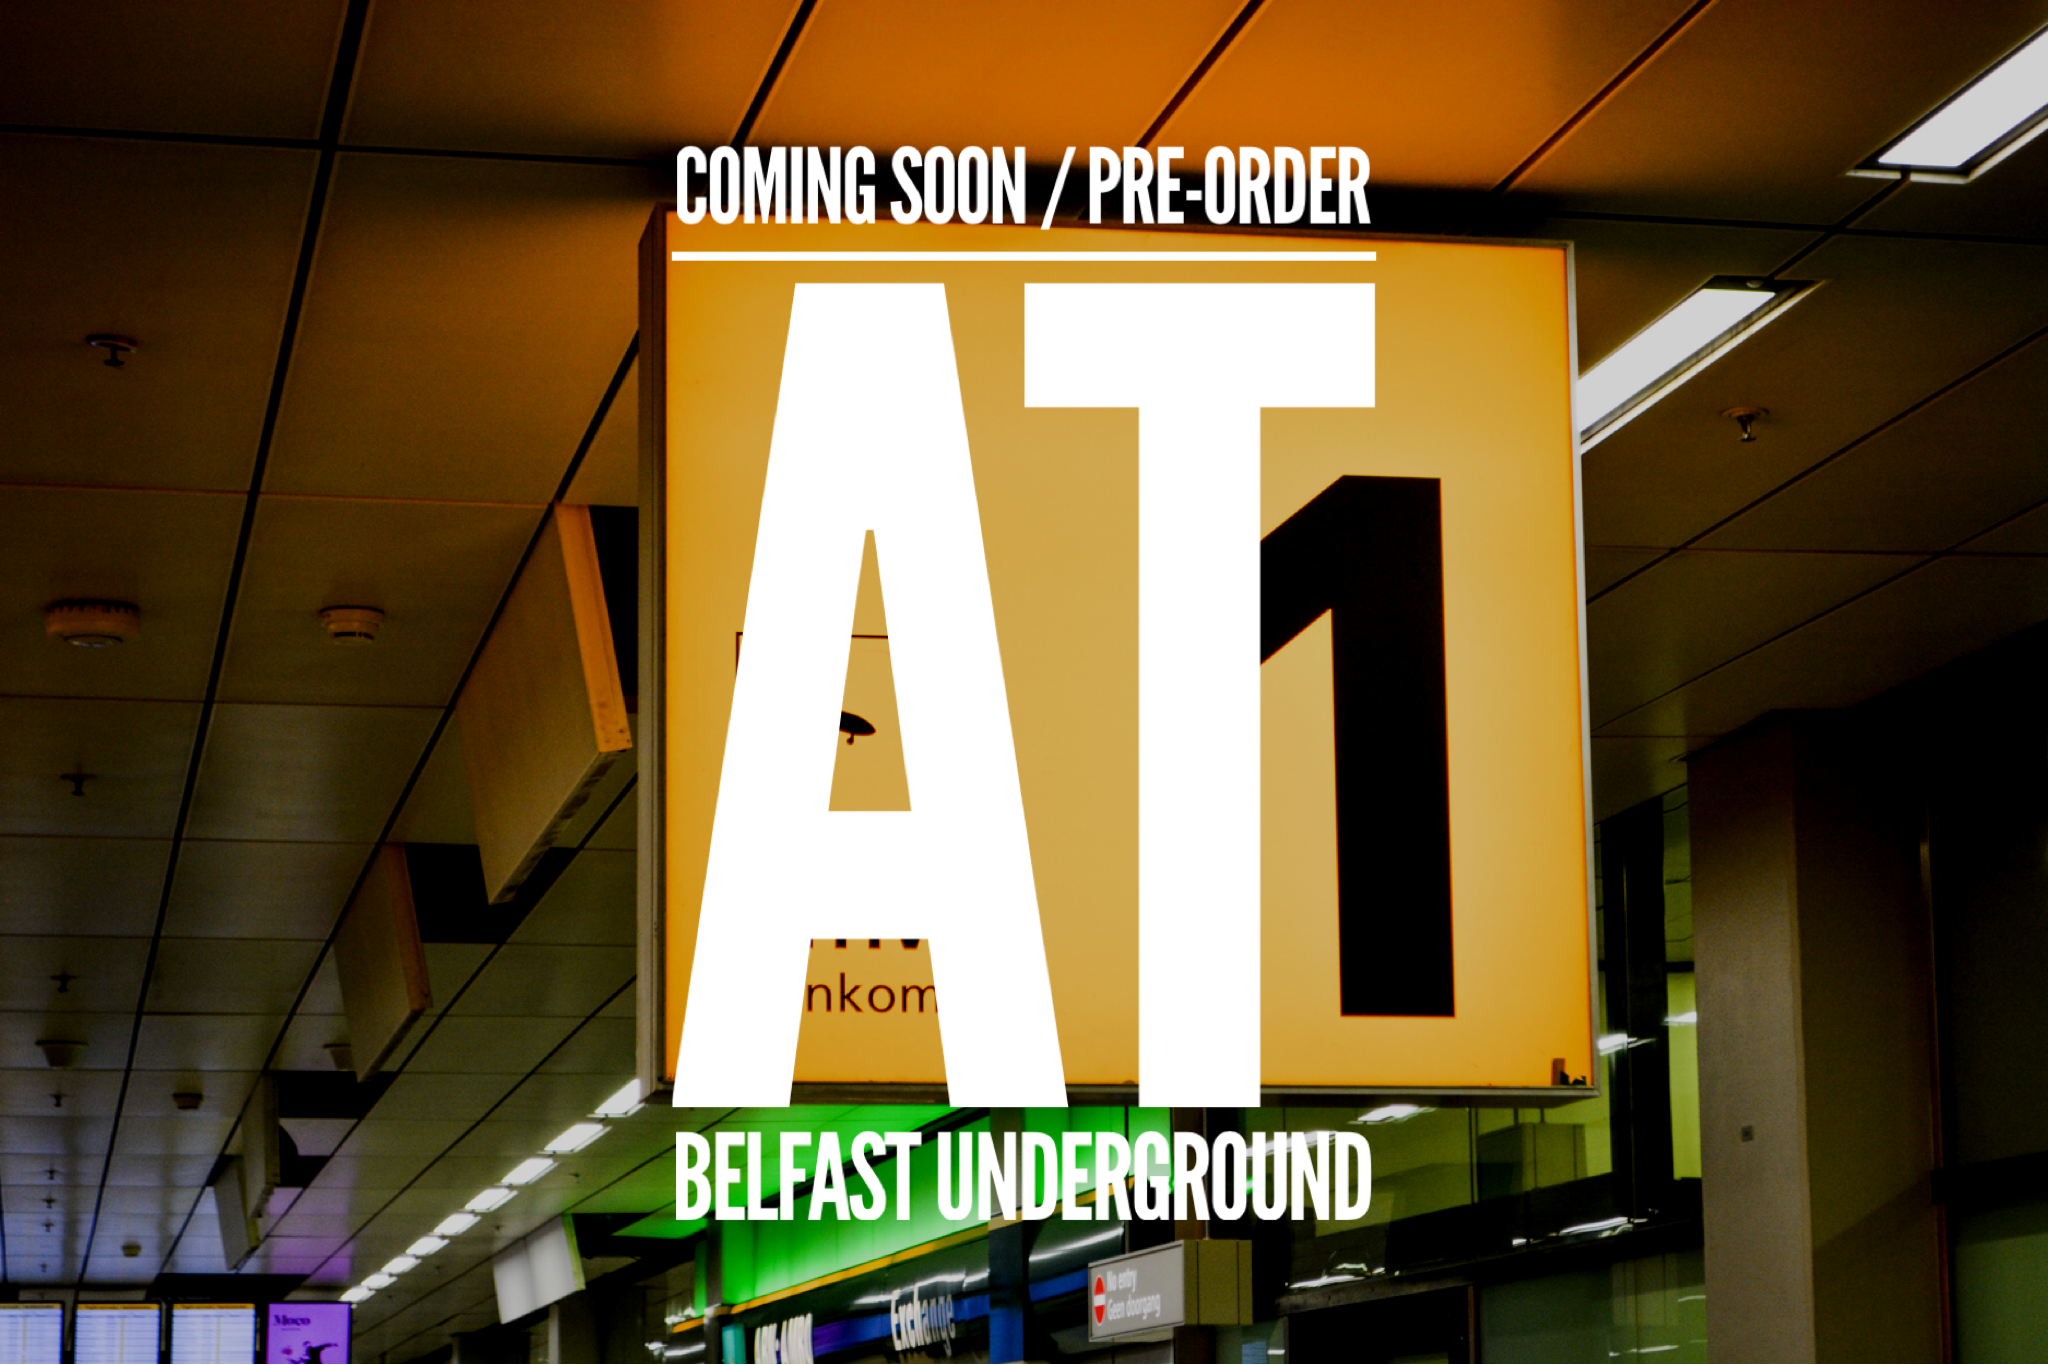 COMING SOON / PRE-ORDERS AT BELFAST UNDERGROUND